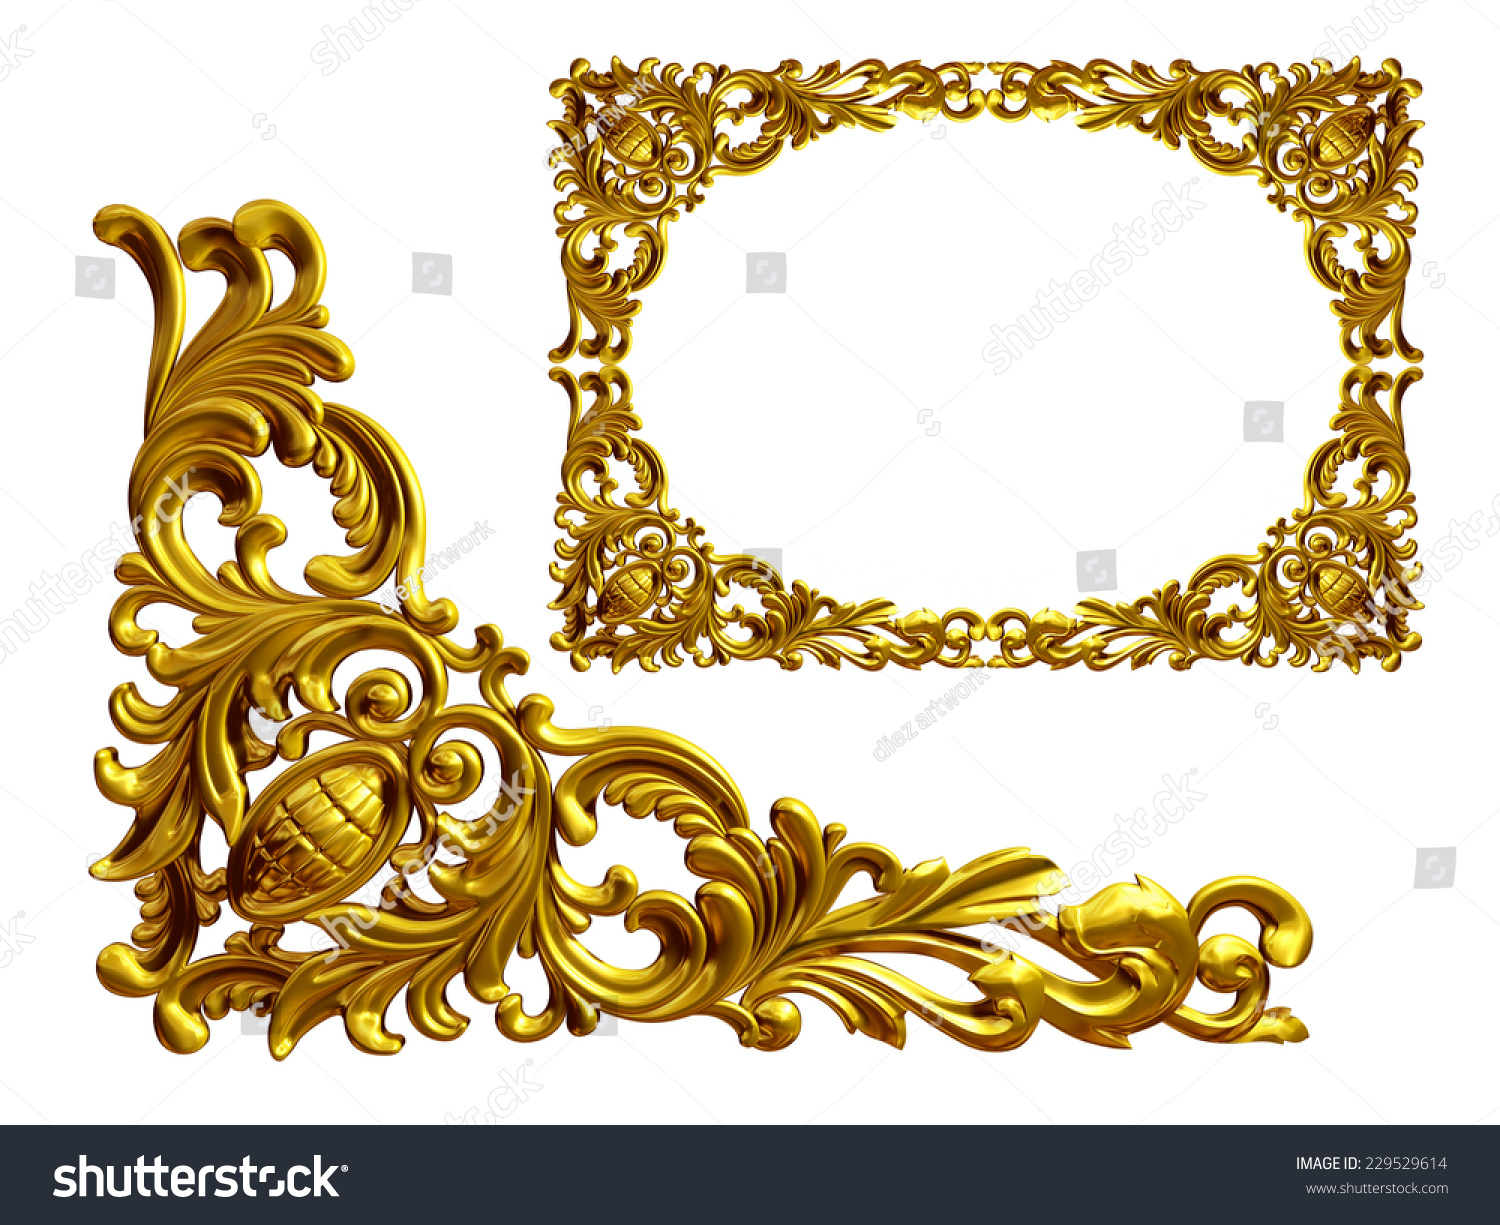 golden frame with baroque ornaments in gold mirror the element to complete the frame